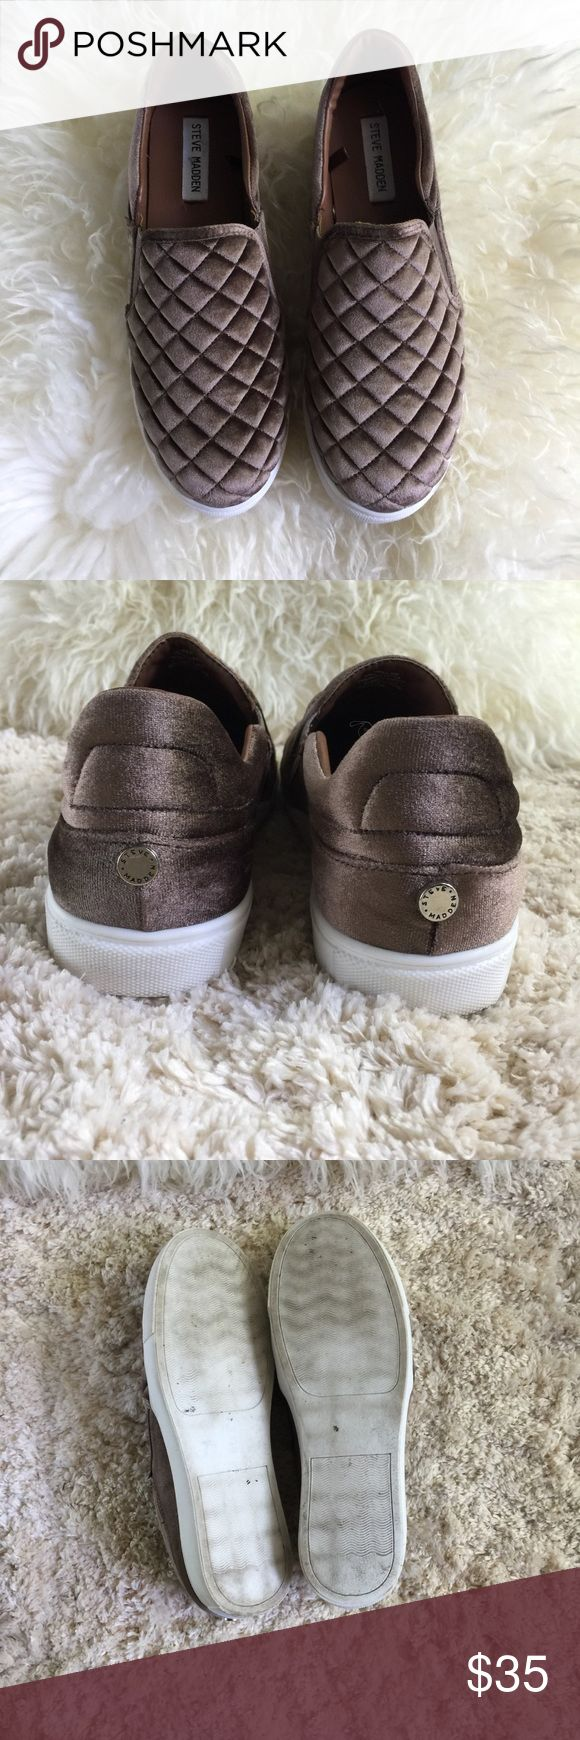 Steve Madden Quilted Velvet Elorra Slip On Steve Madden Quilted Velvet Elorra Slip On Sneakers these look nearly new! Some wear on the bottoms but in EUC. Steve Madden Shoes Athletic Shoes